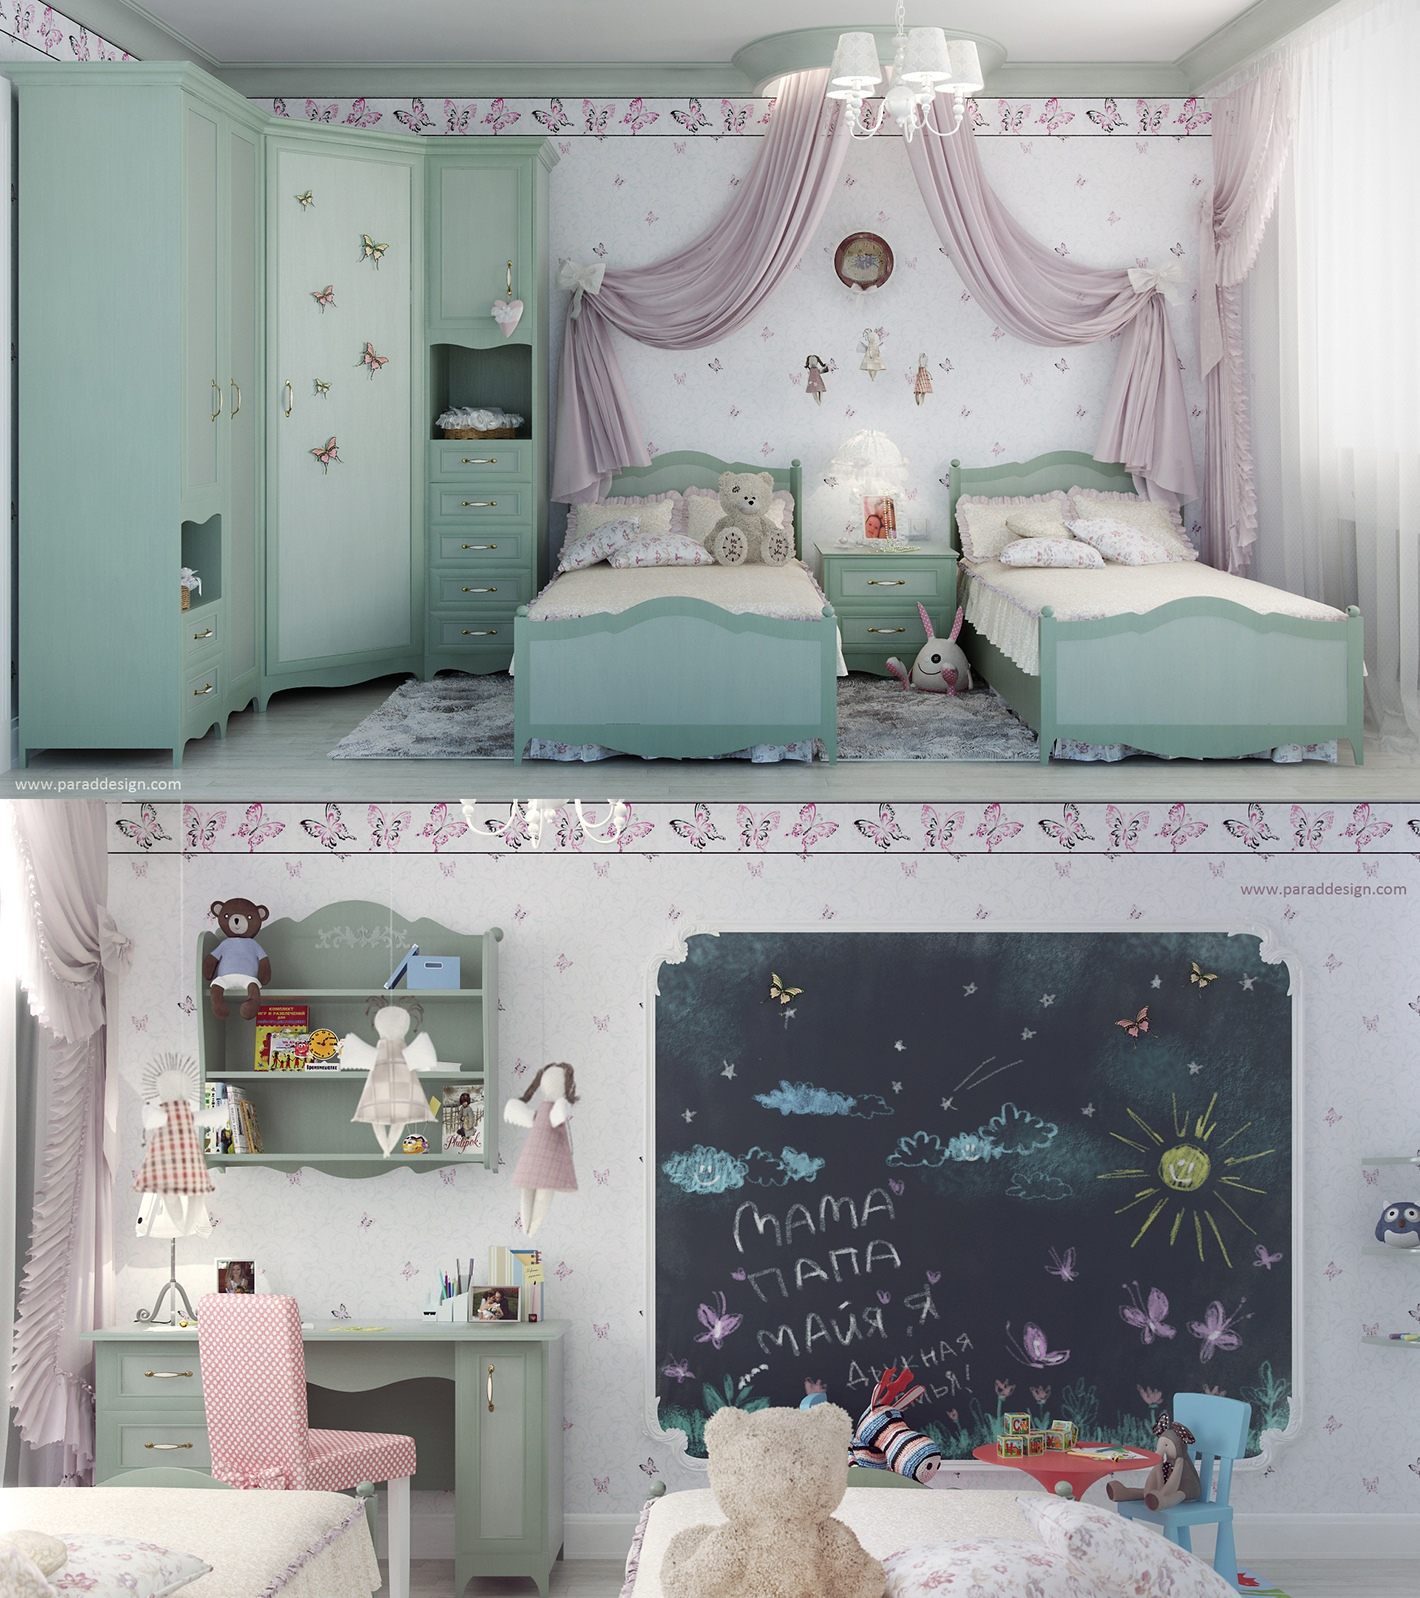 2 little girls bedroom 7 interior design ideas - Designs for girls bedroom ...